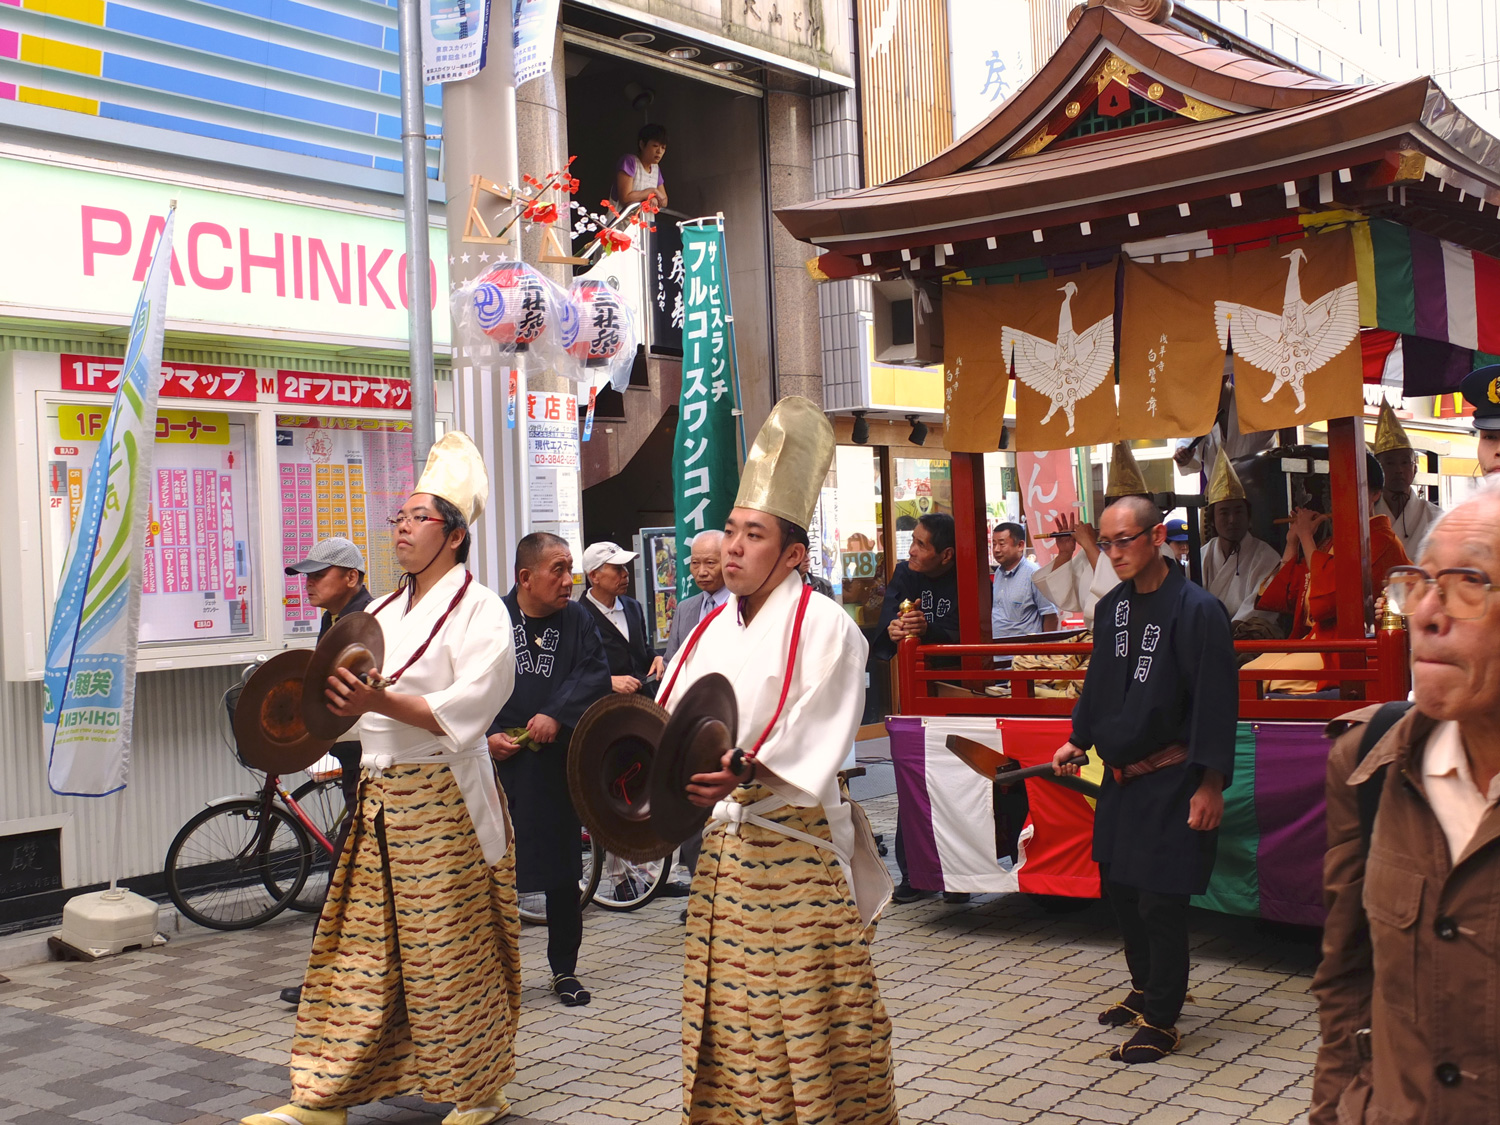 In Asakusa we stumbled upon a large festival we had no idea was going on.